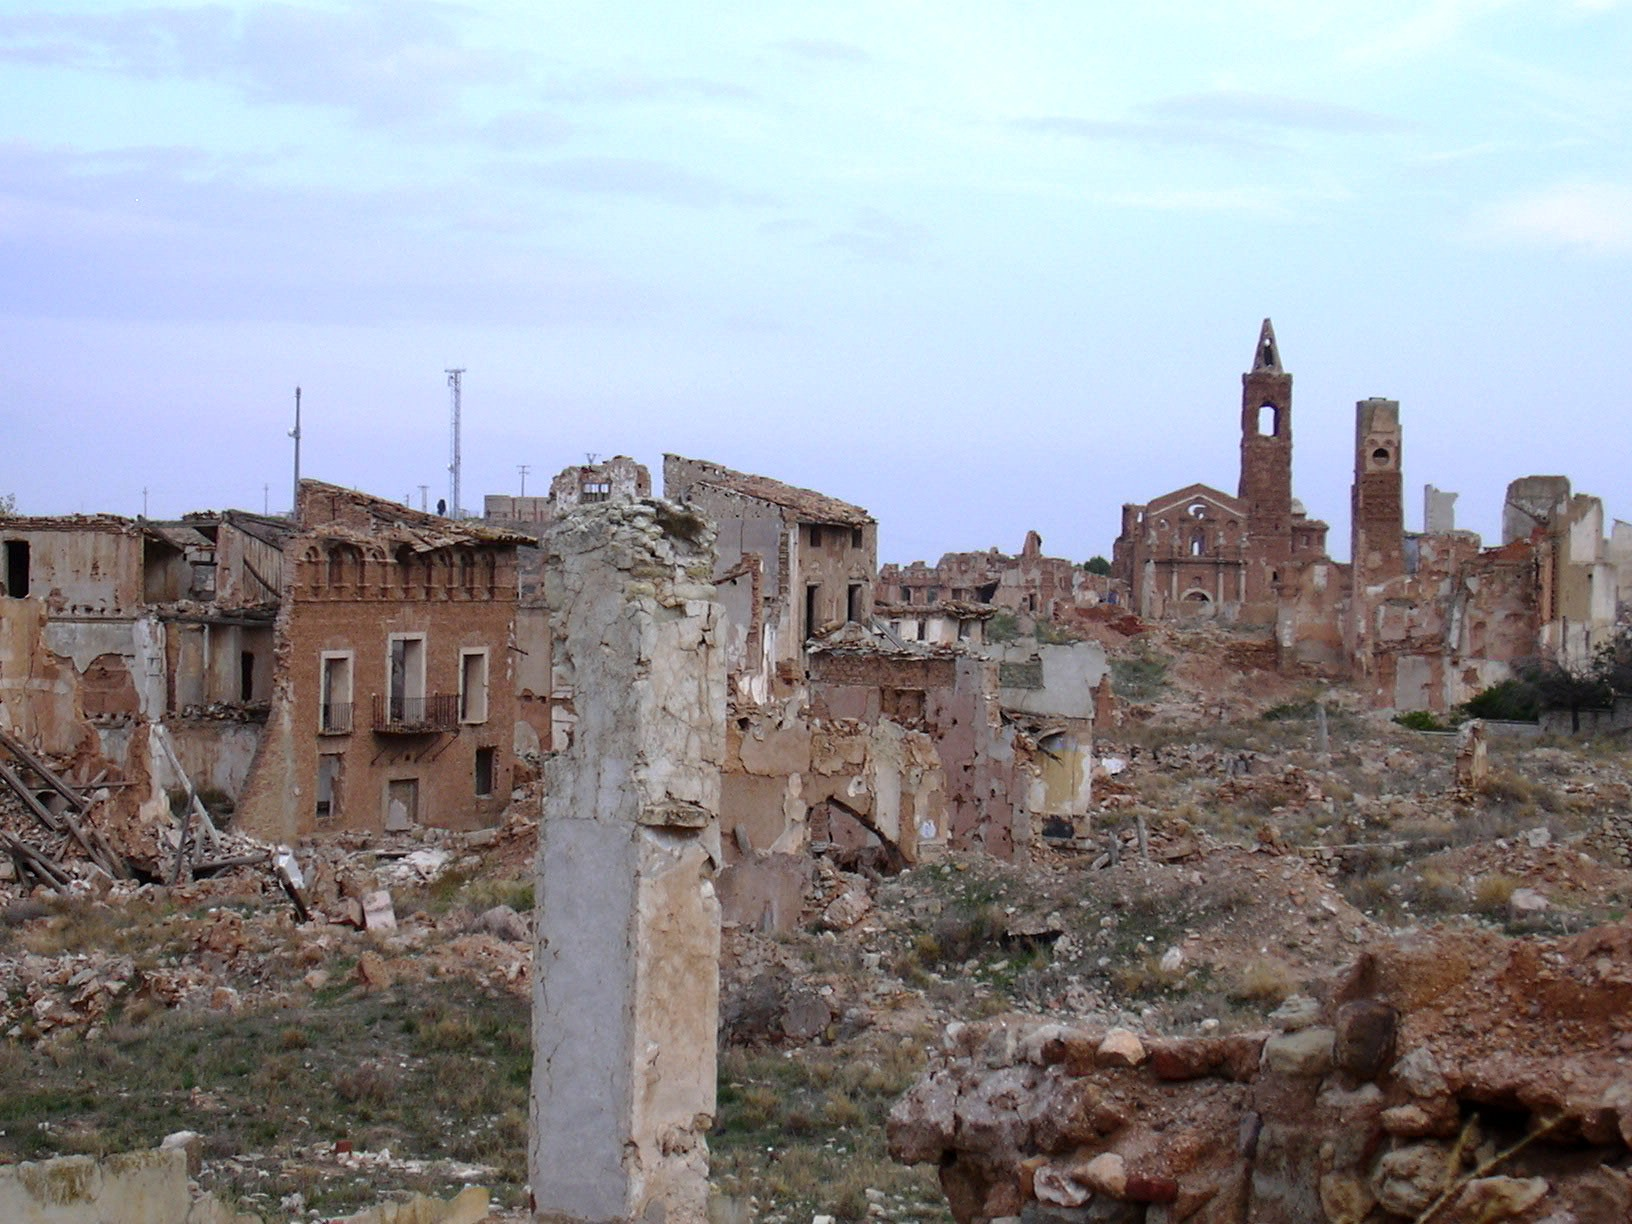 http://upload.wikimedia.org/wikipedia/commons/0/03/Belchite_-_Vista_general01.JPG